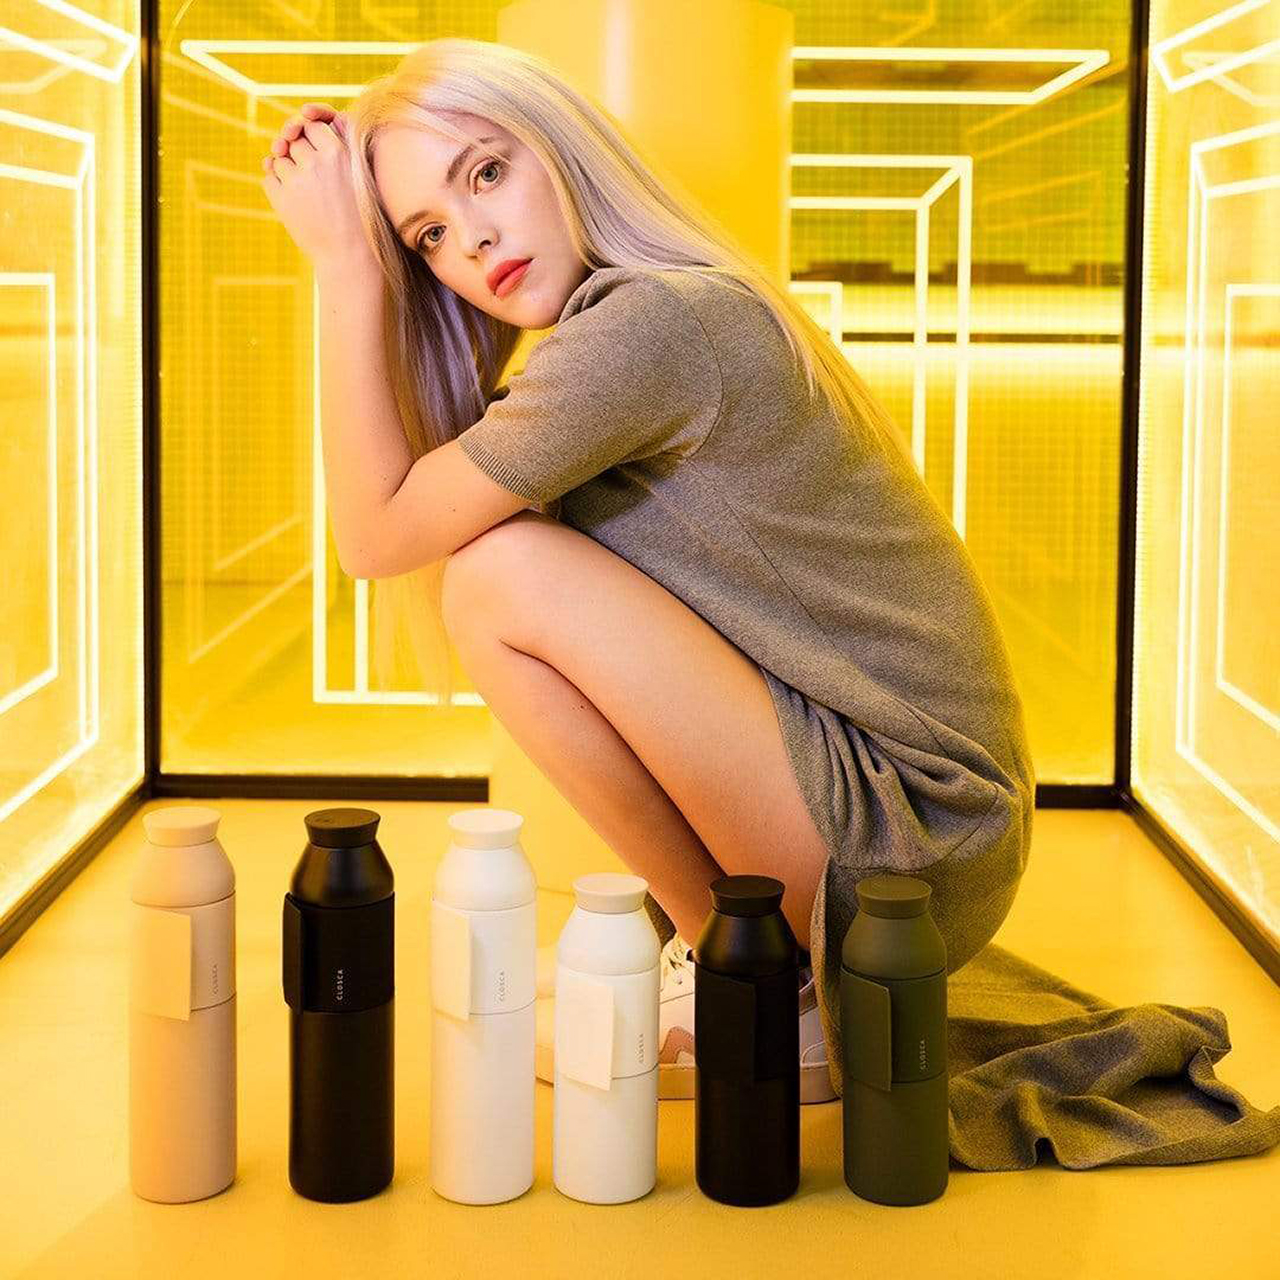 woman crouched next to six water bottles